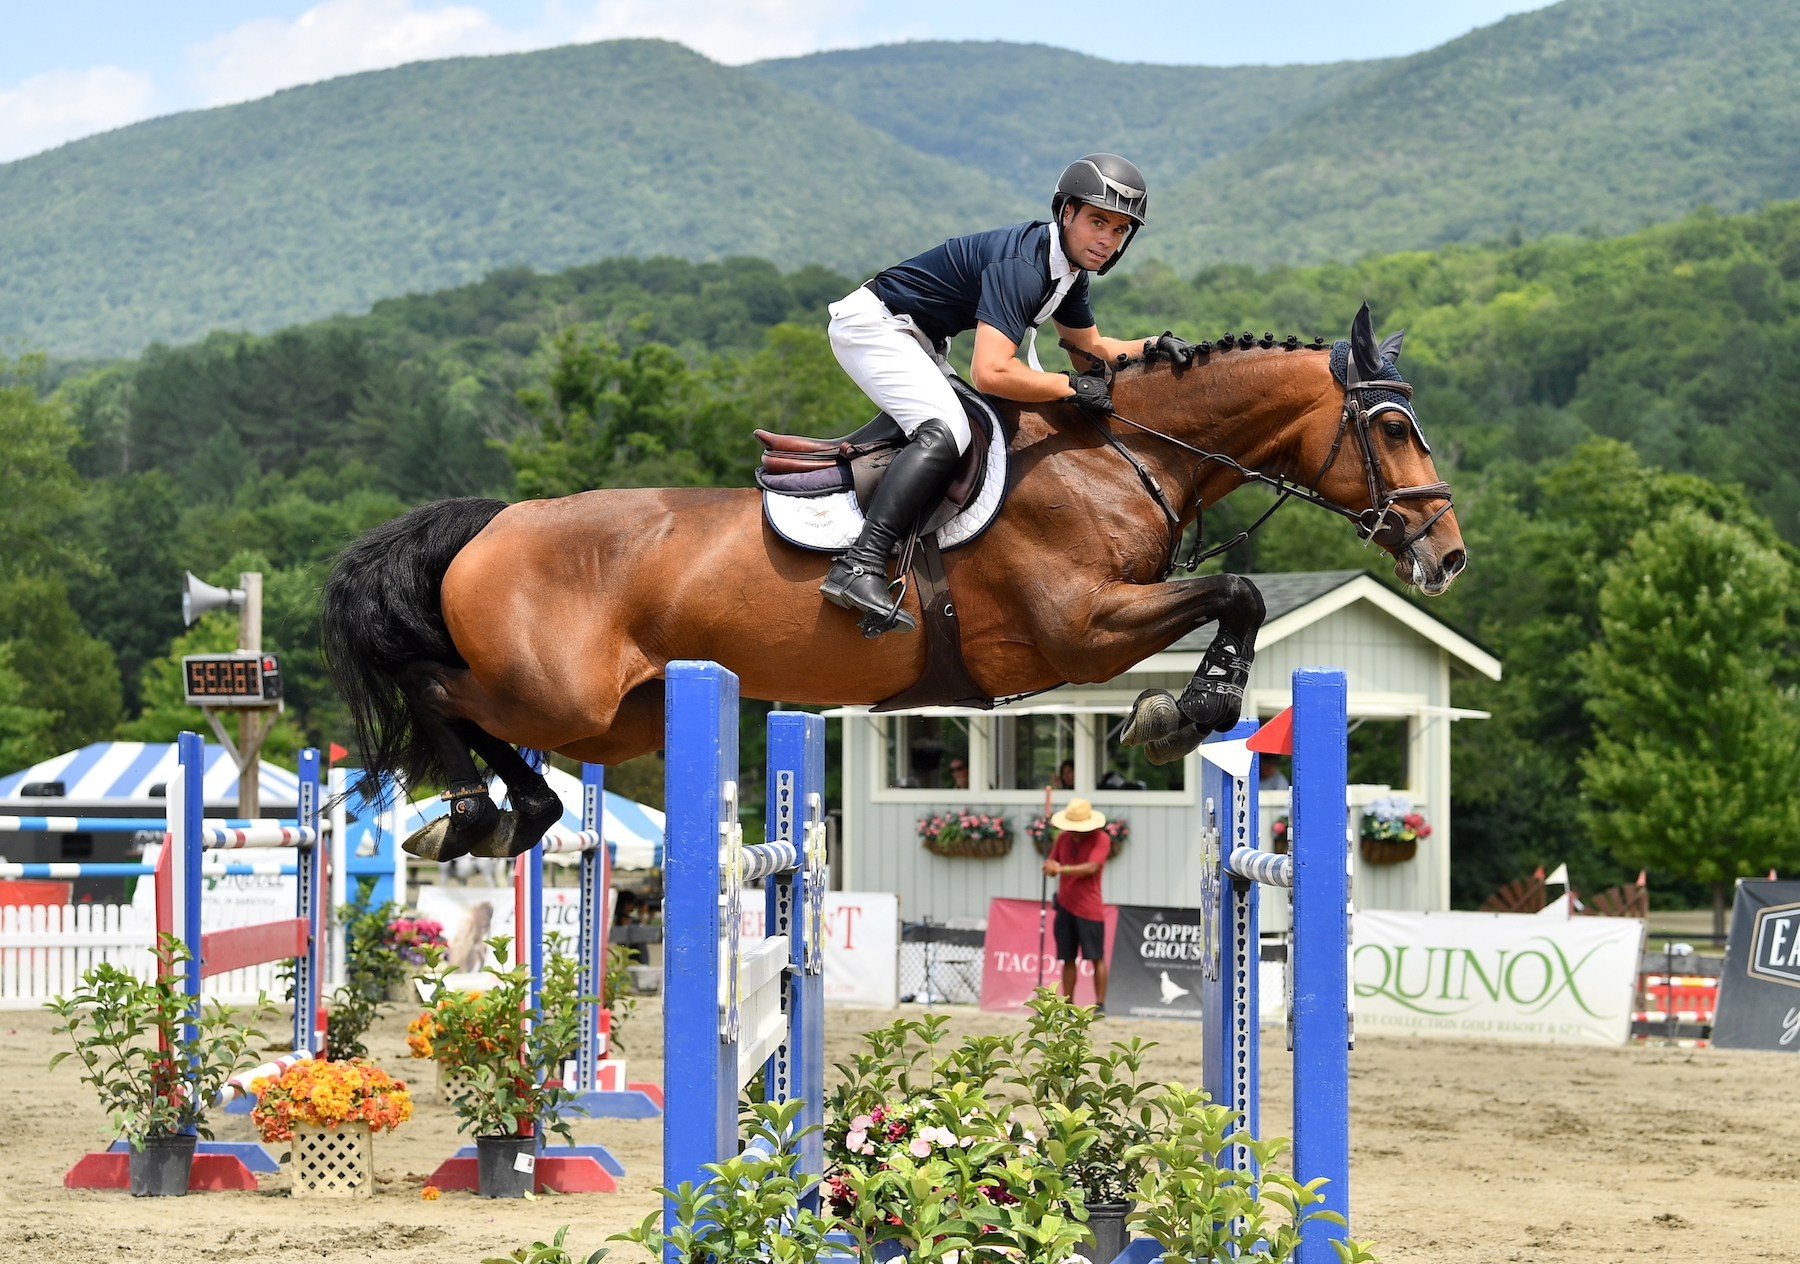 Kevin Mealiff was second in the $30,000 Otter Creek Grand Prix, presented by Purina Horse Feed, riding Nuca 2 at the Vermont Summer Festival on Saturday, July 20, in East Dorset, VT.<br><b>Photo by <a href='https://www.andrewryback.com/' target='_blank'>Andrew Ryback Photography</a></b>